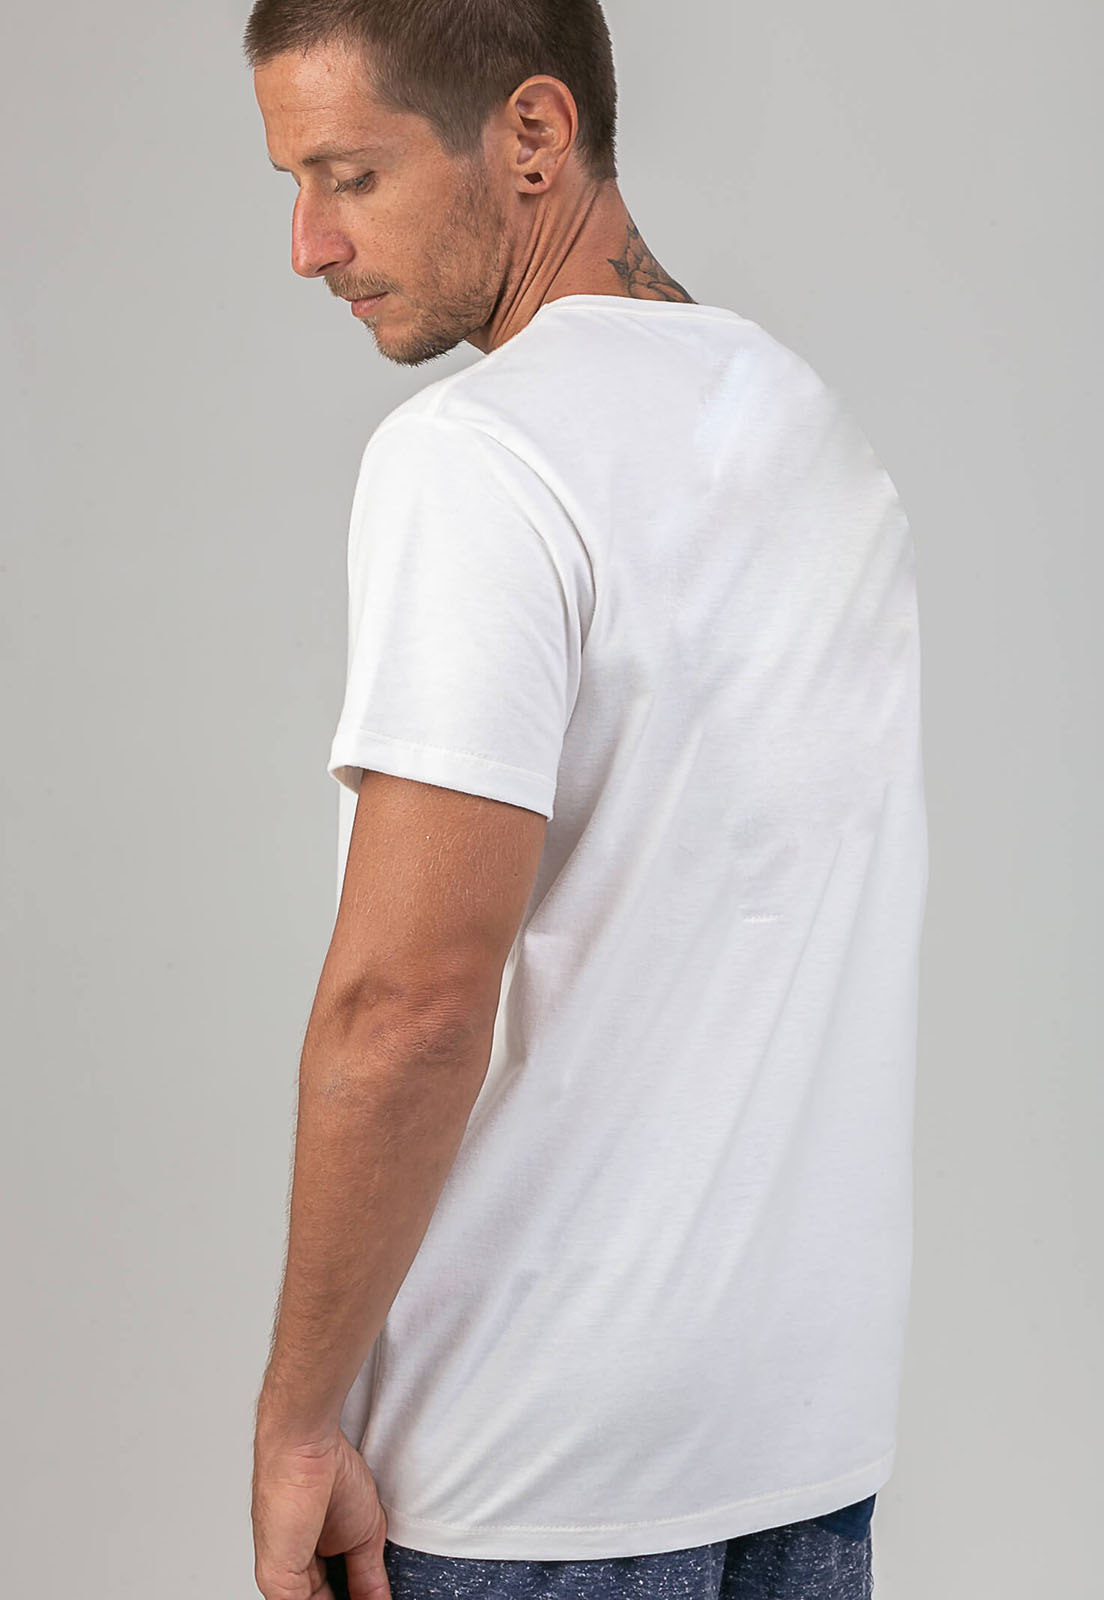 T-Shirt The Way melty